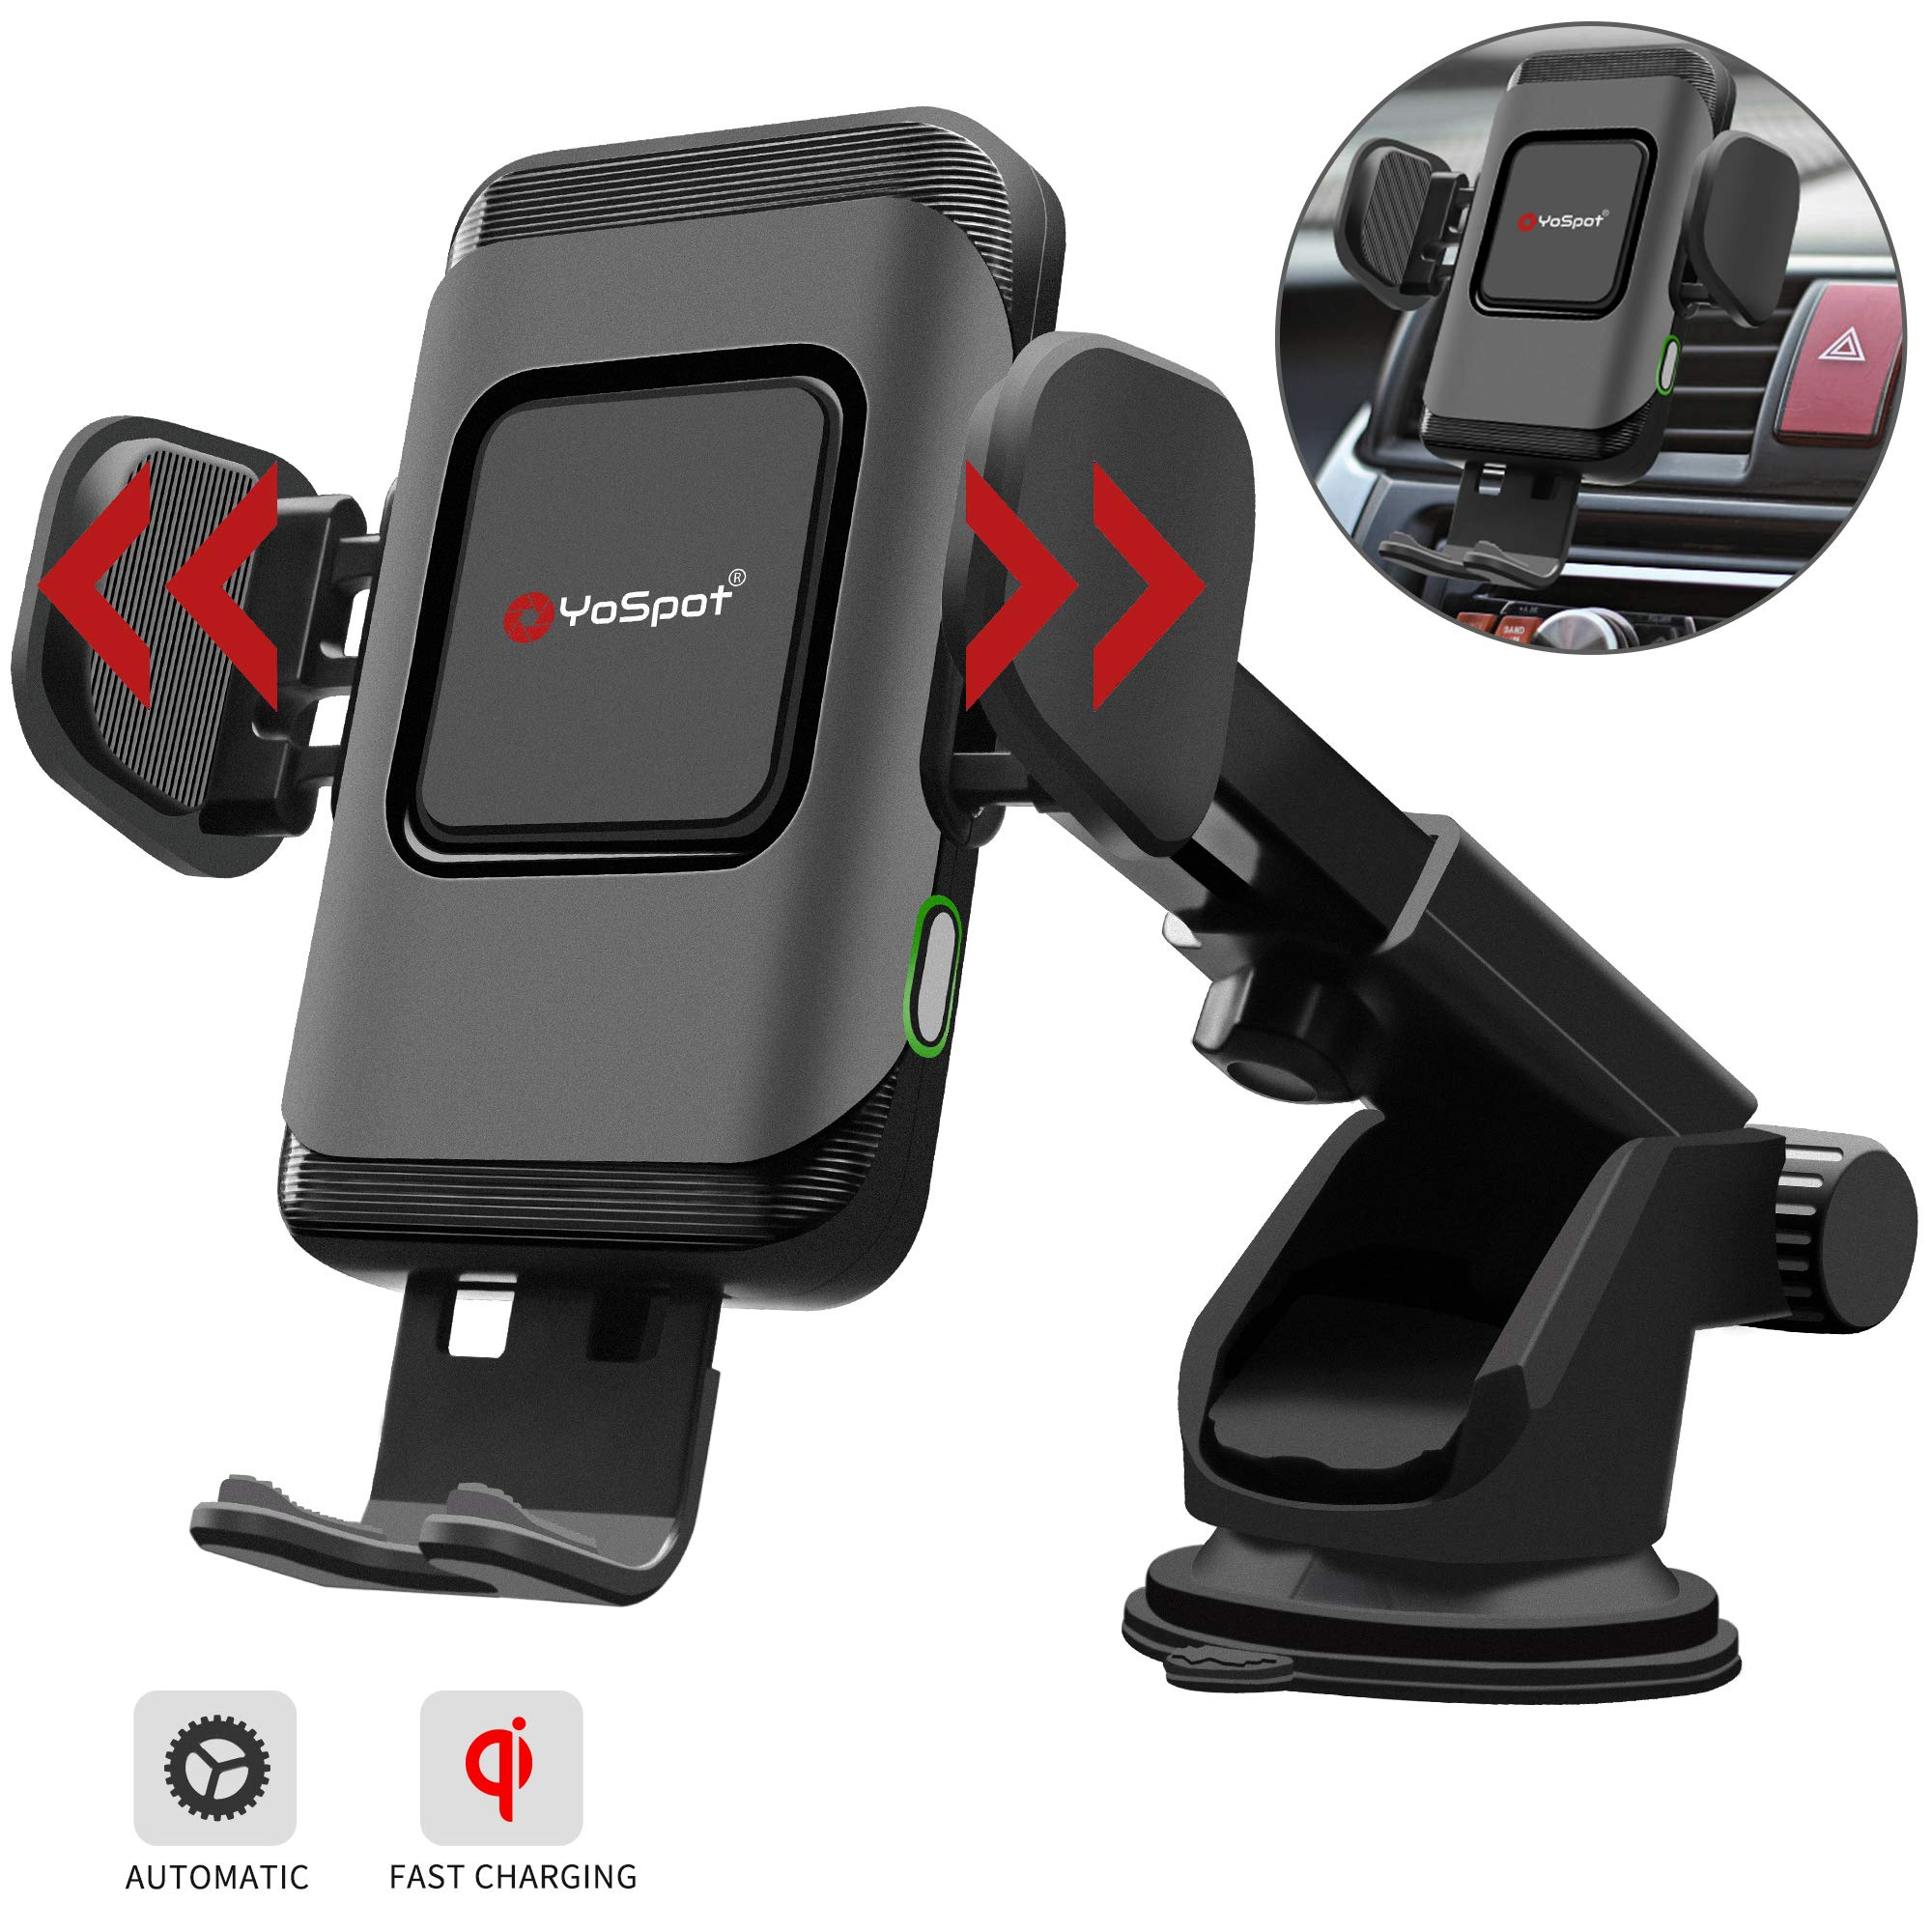 YoSpot QI 10W Wireless Car Charger Auto Clamping Phone Mount Air Vent & Windshield Dashboard Phone Holder Compatible with iPhone Xs Max/XR/XS/X/8/8 Plus Galaxy S10/S10+/S9/S9+/S8/S8+ Universal Clamp by YoSpot